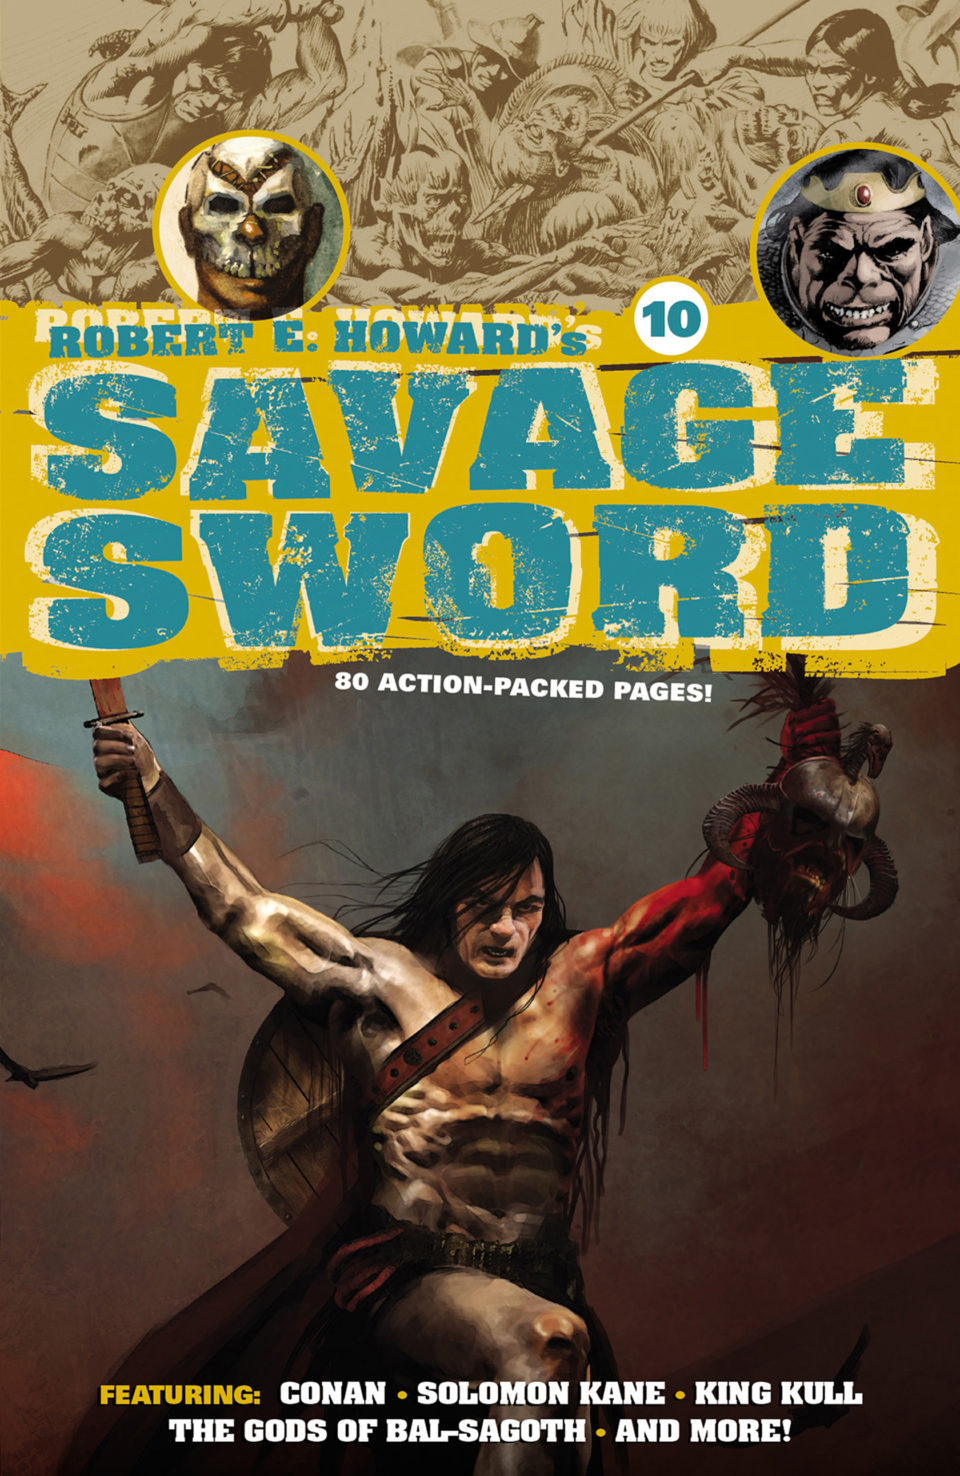 2015.04-RobertE.Howard.s-Savage.Sword10-BenjaminCarre